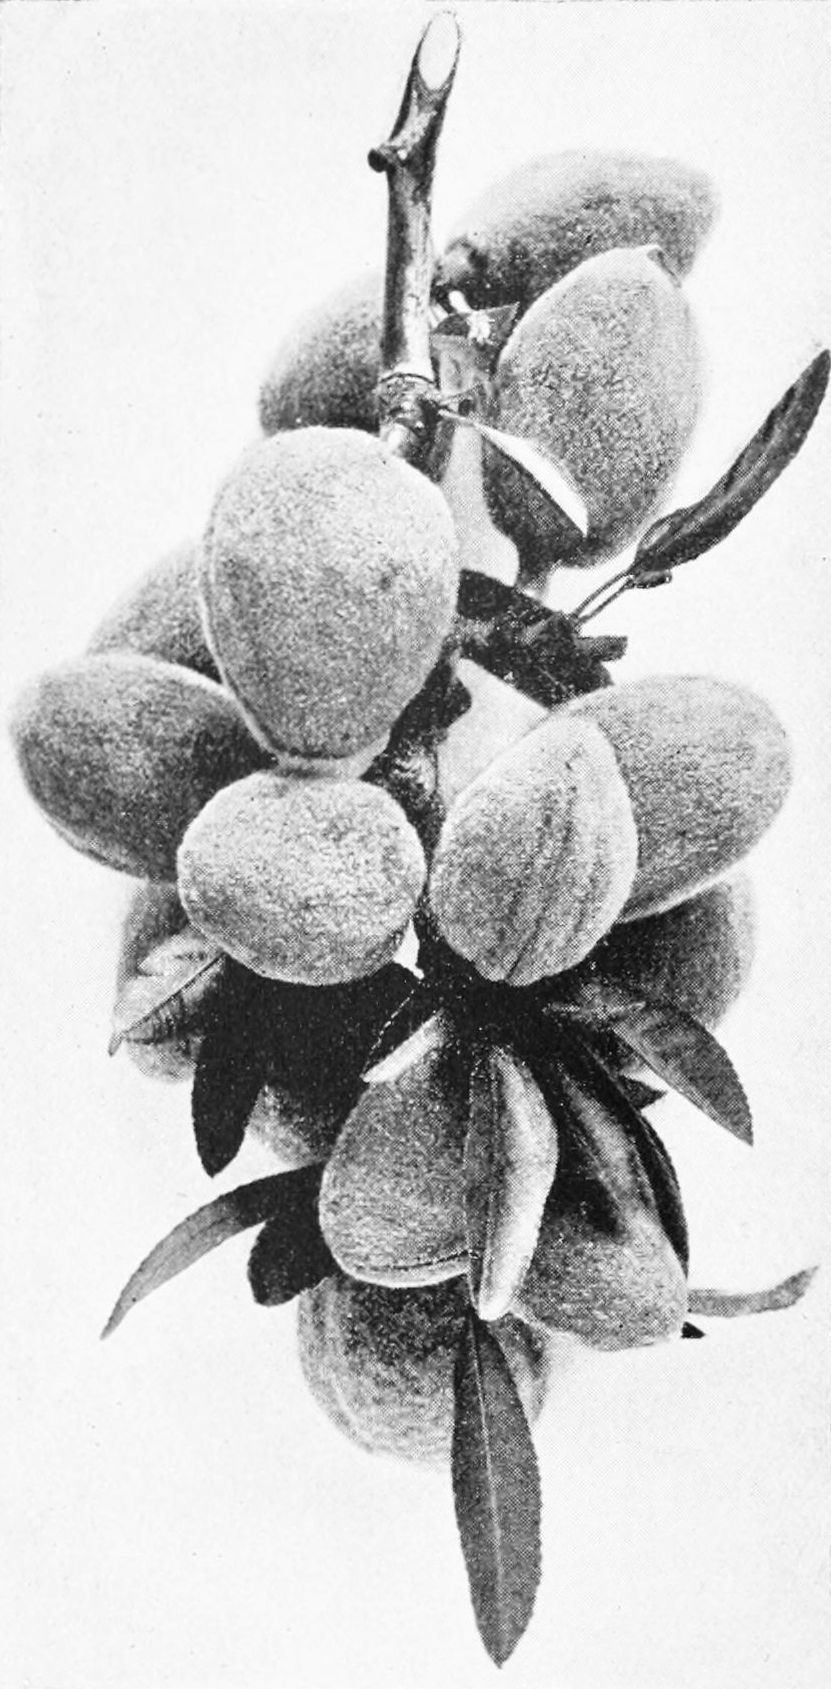 PSM V44 D226 Almond bough in july.jpg